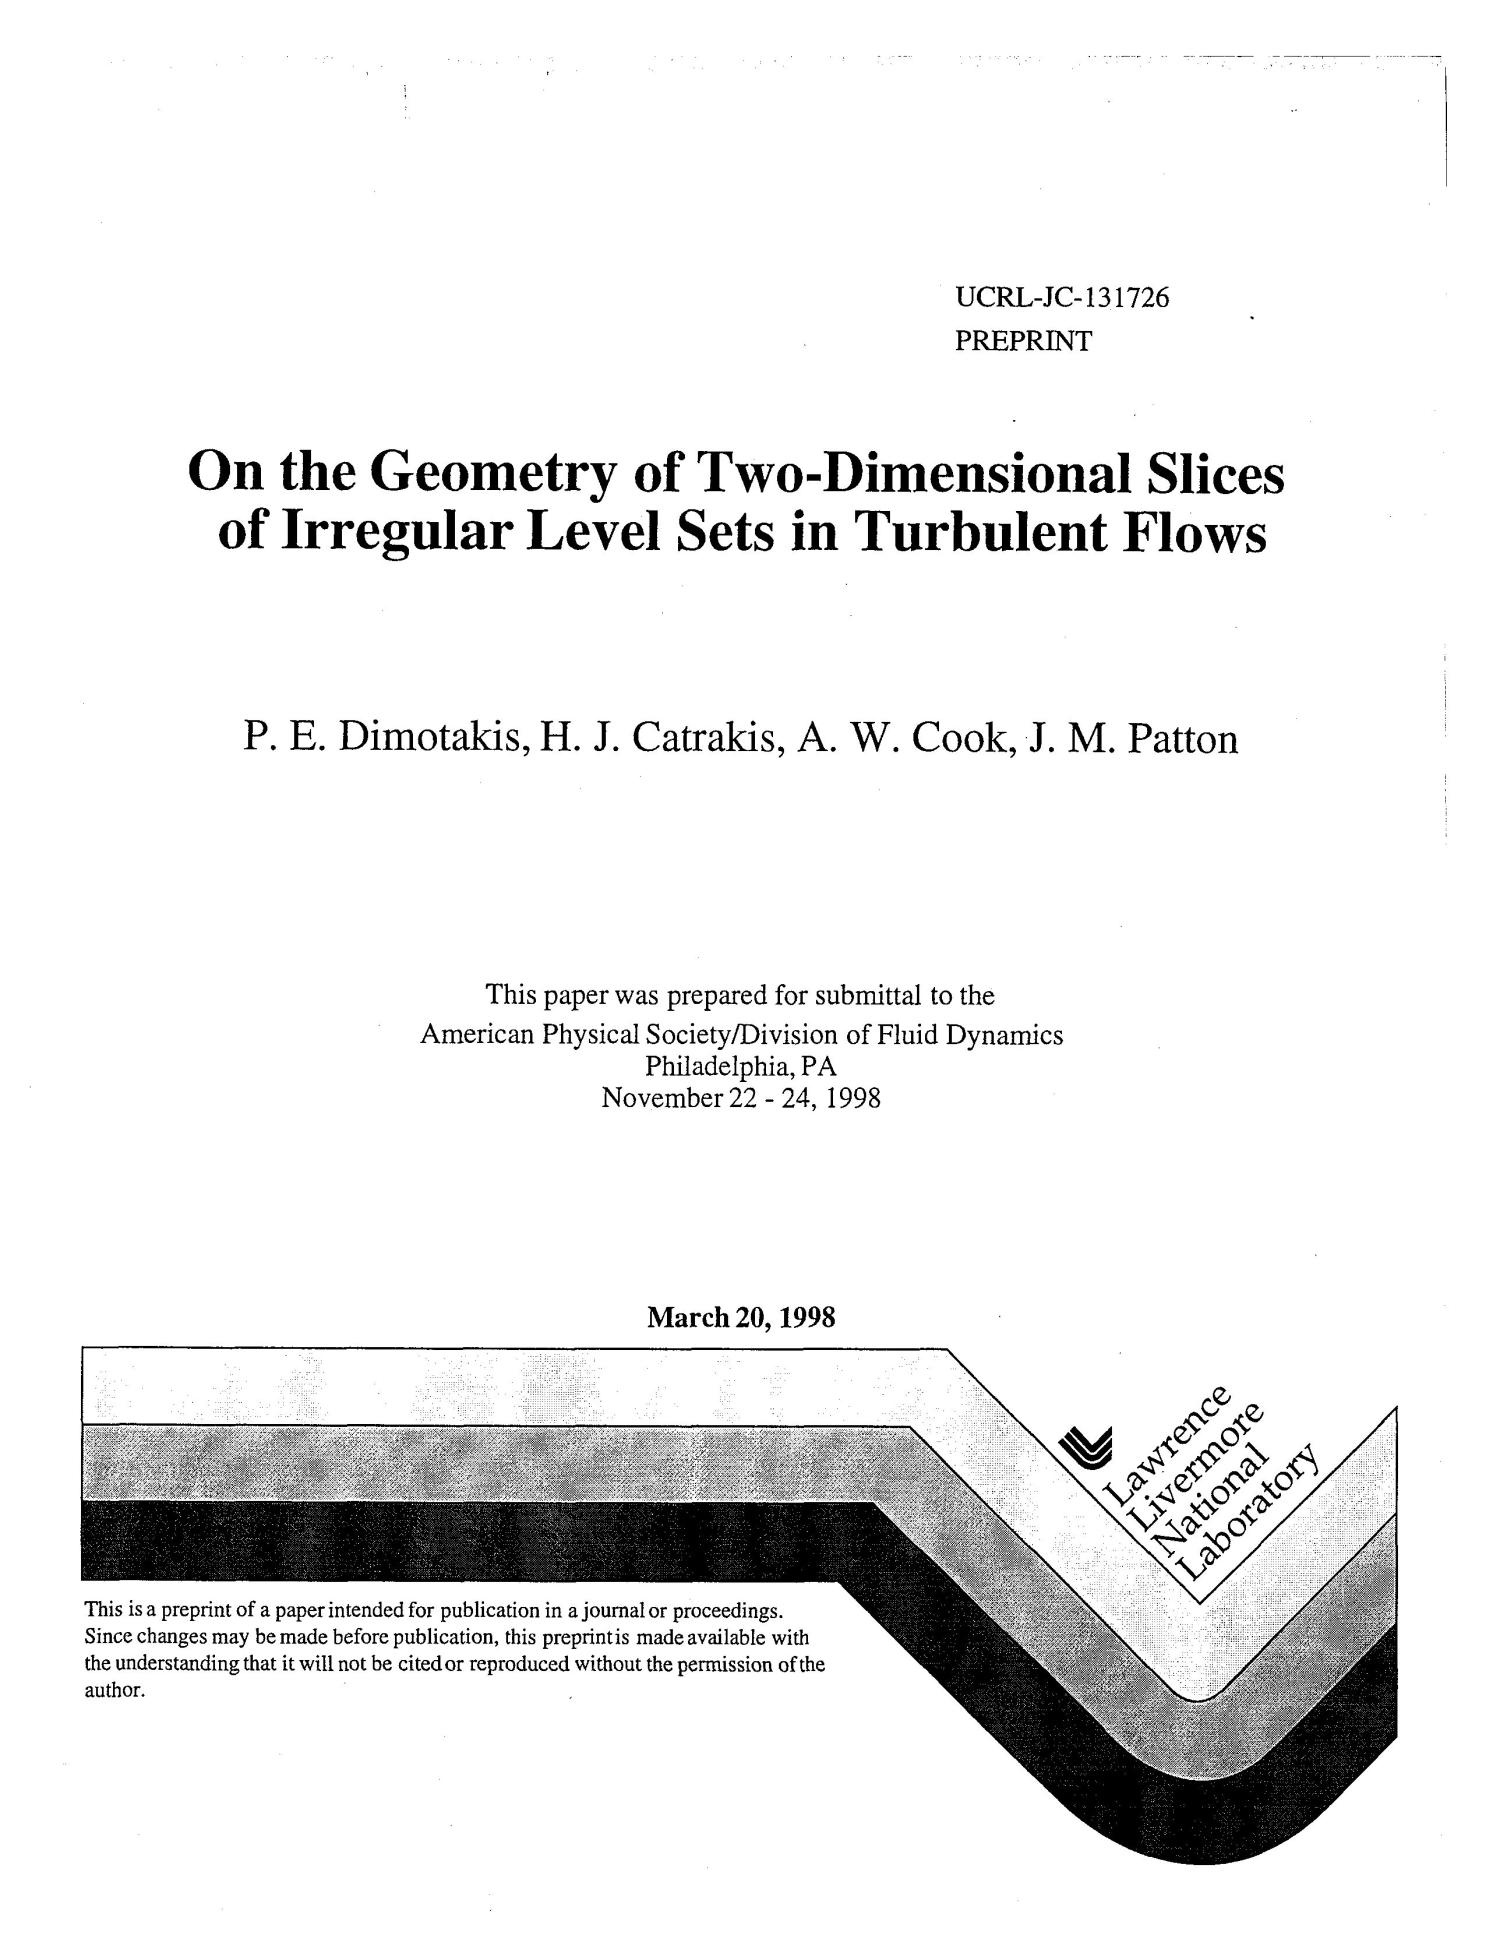 On the geometry of two-dimensional slices of irregular level sets in turbulent flows                                                                                                      [Sequence #]: 1 of 16